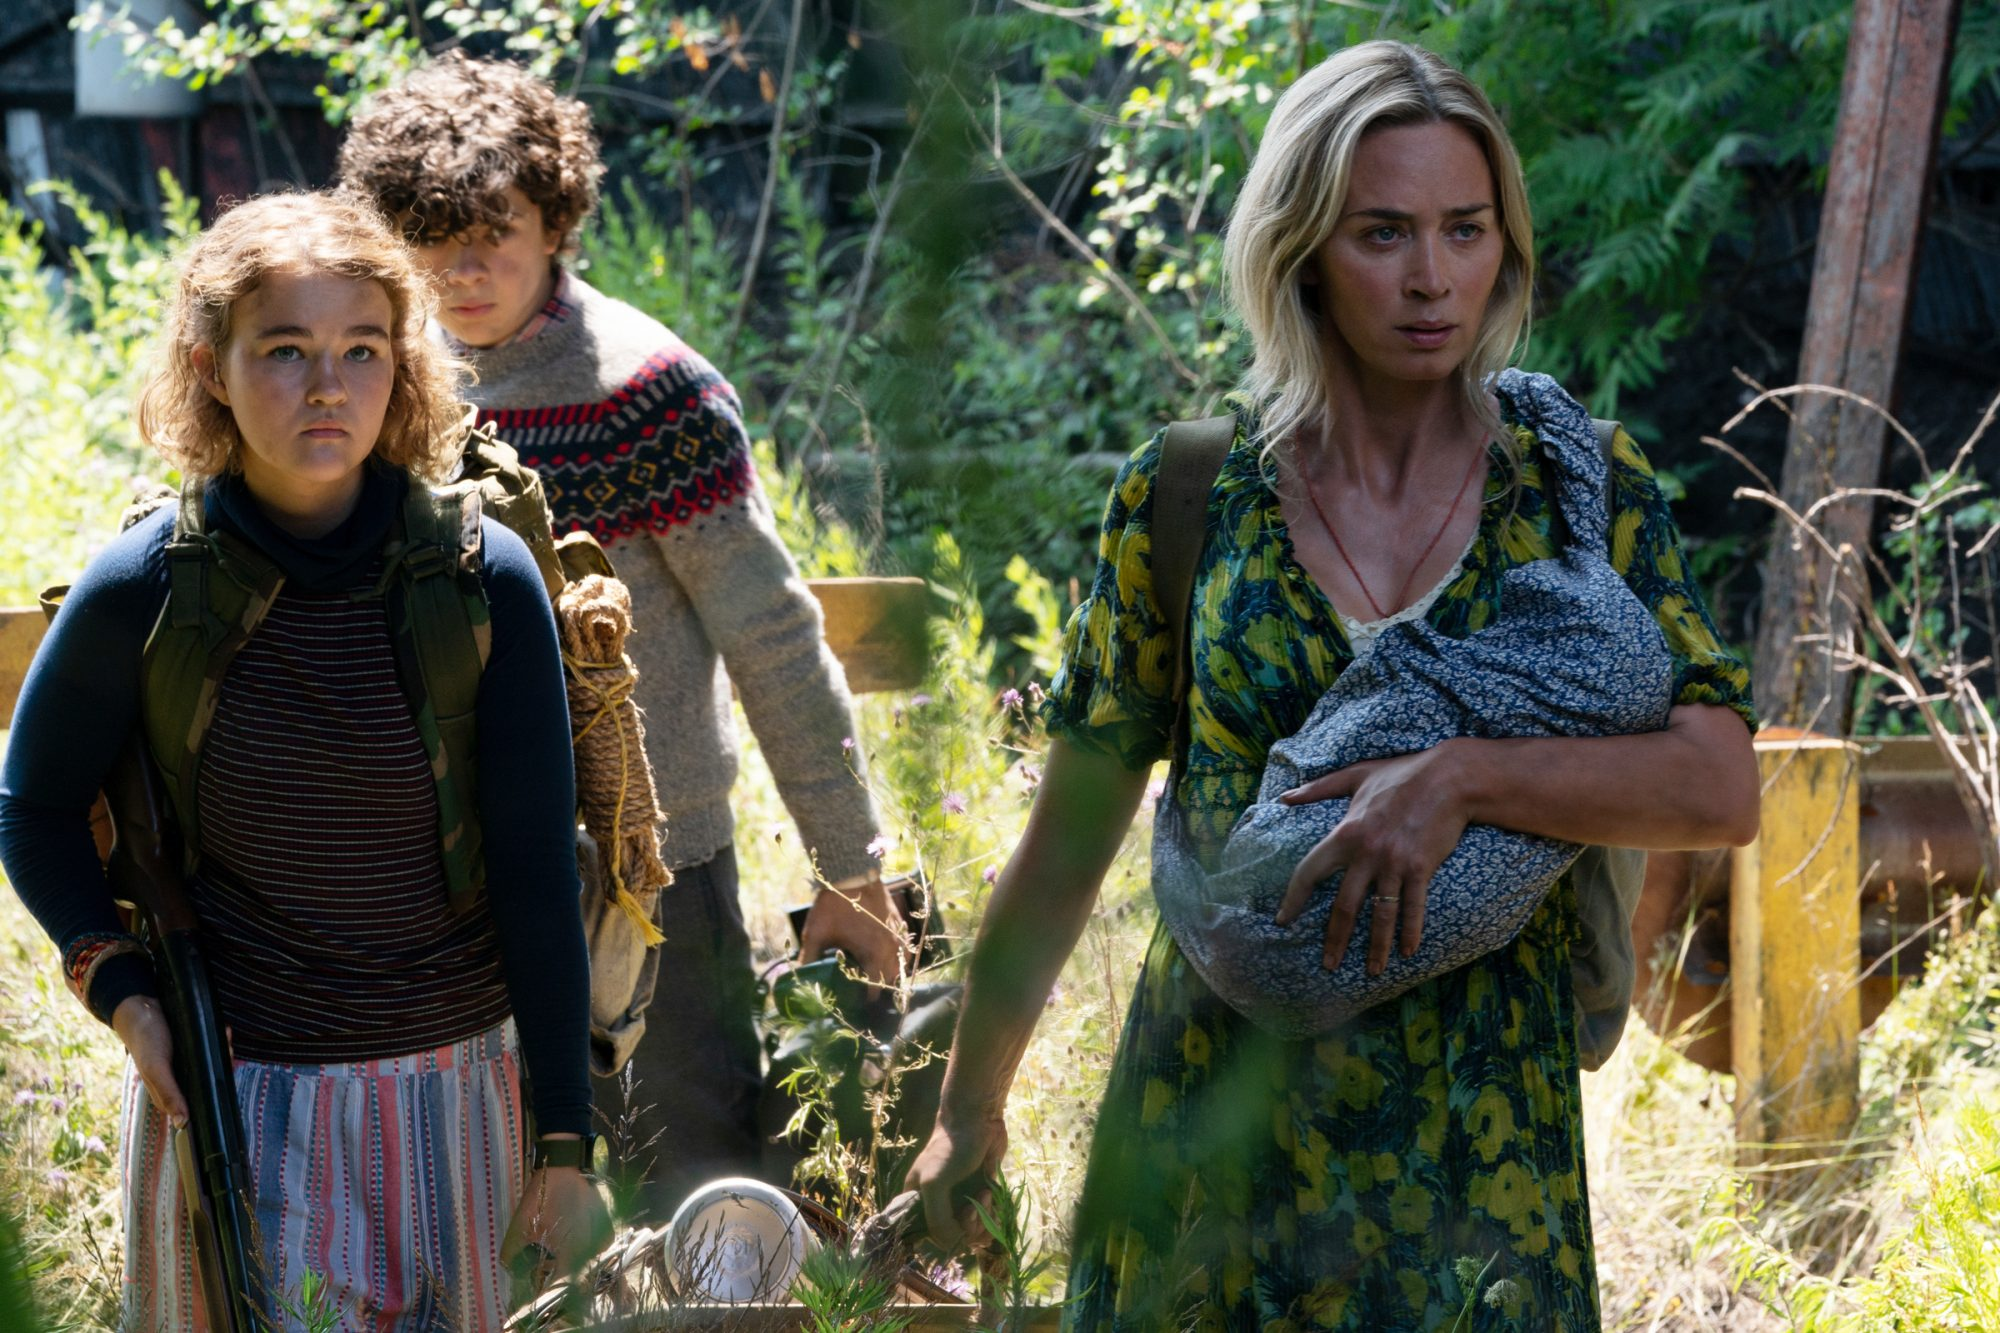 2020 Most Anticipated Sci-Fi Movies - A Quiet Place Part 2 with Emily Blunt